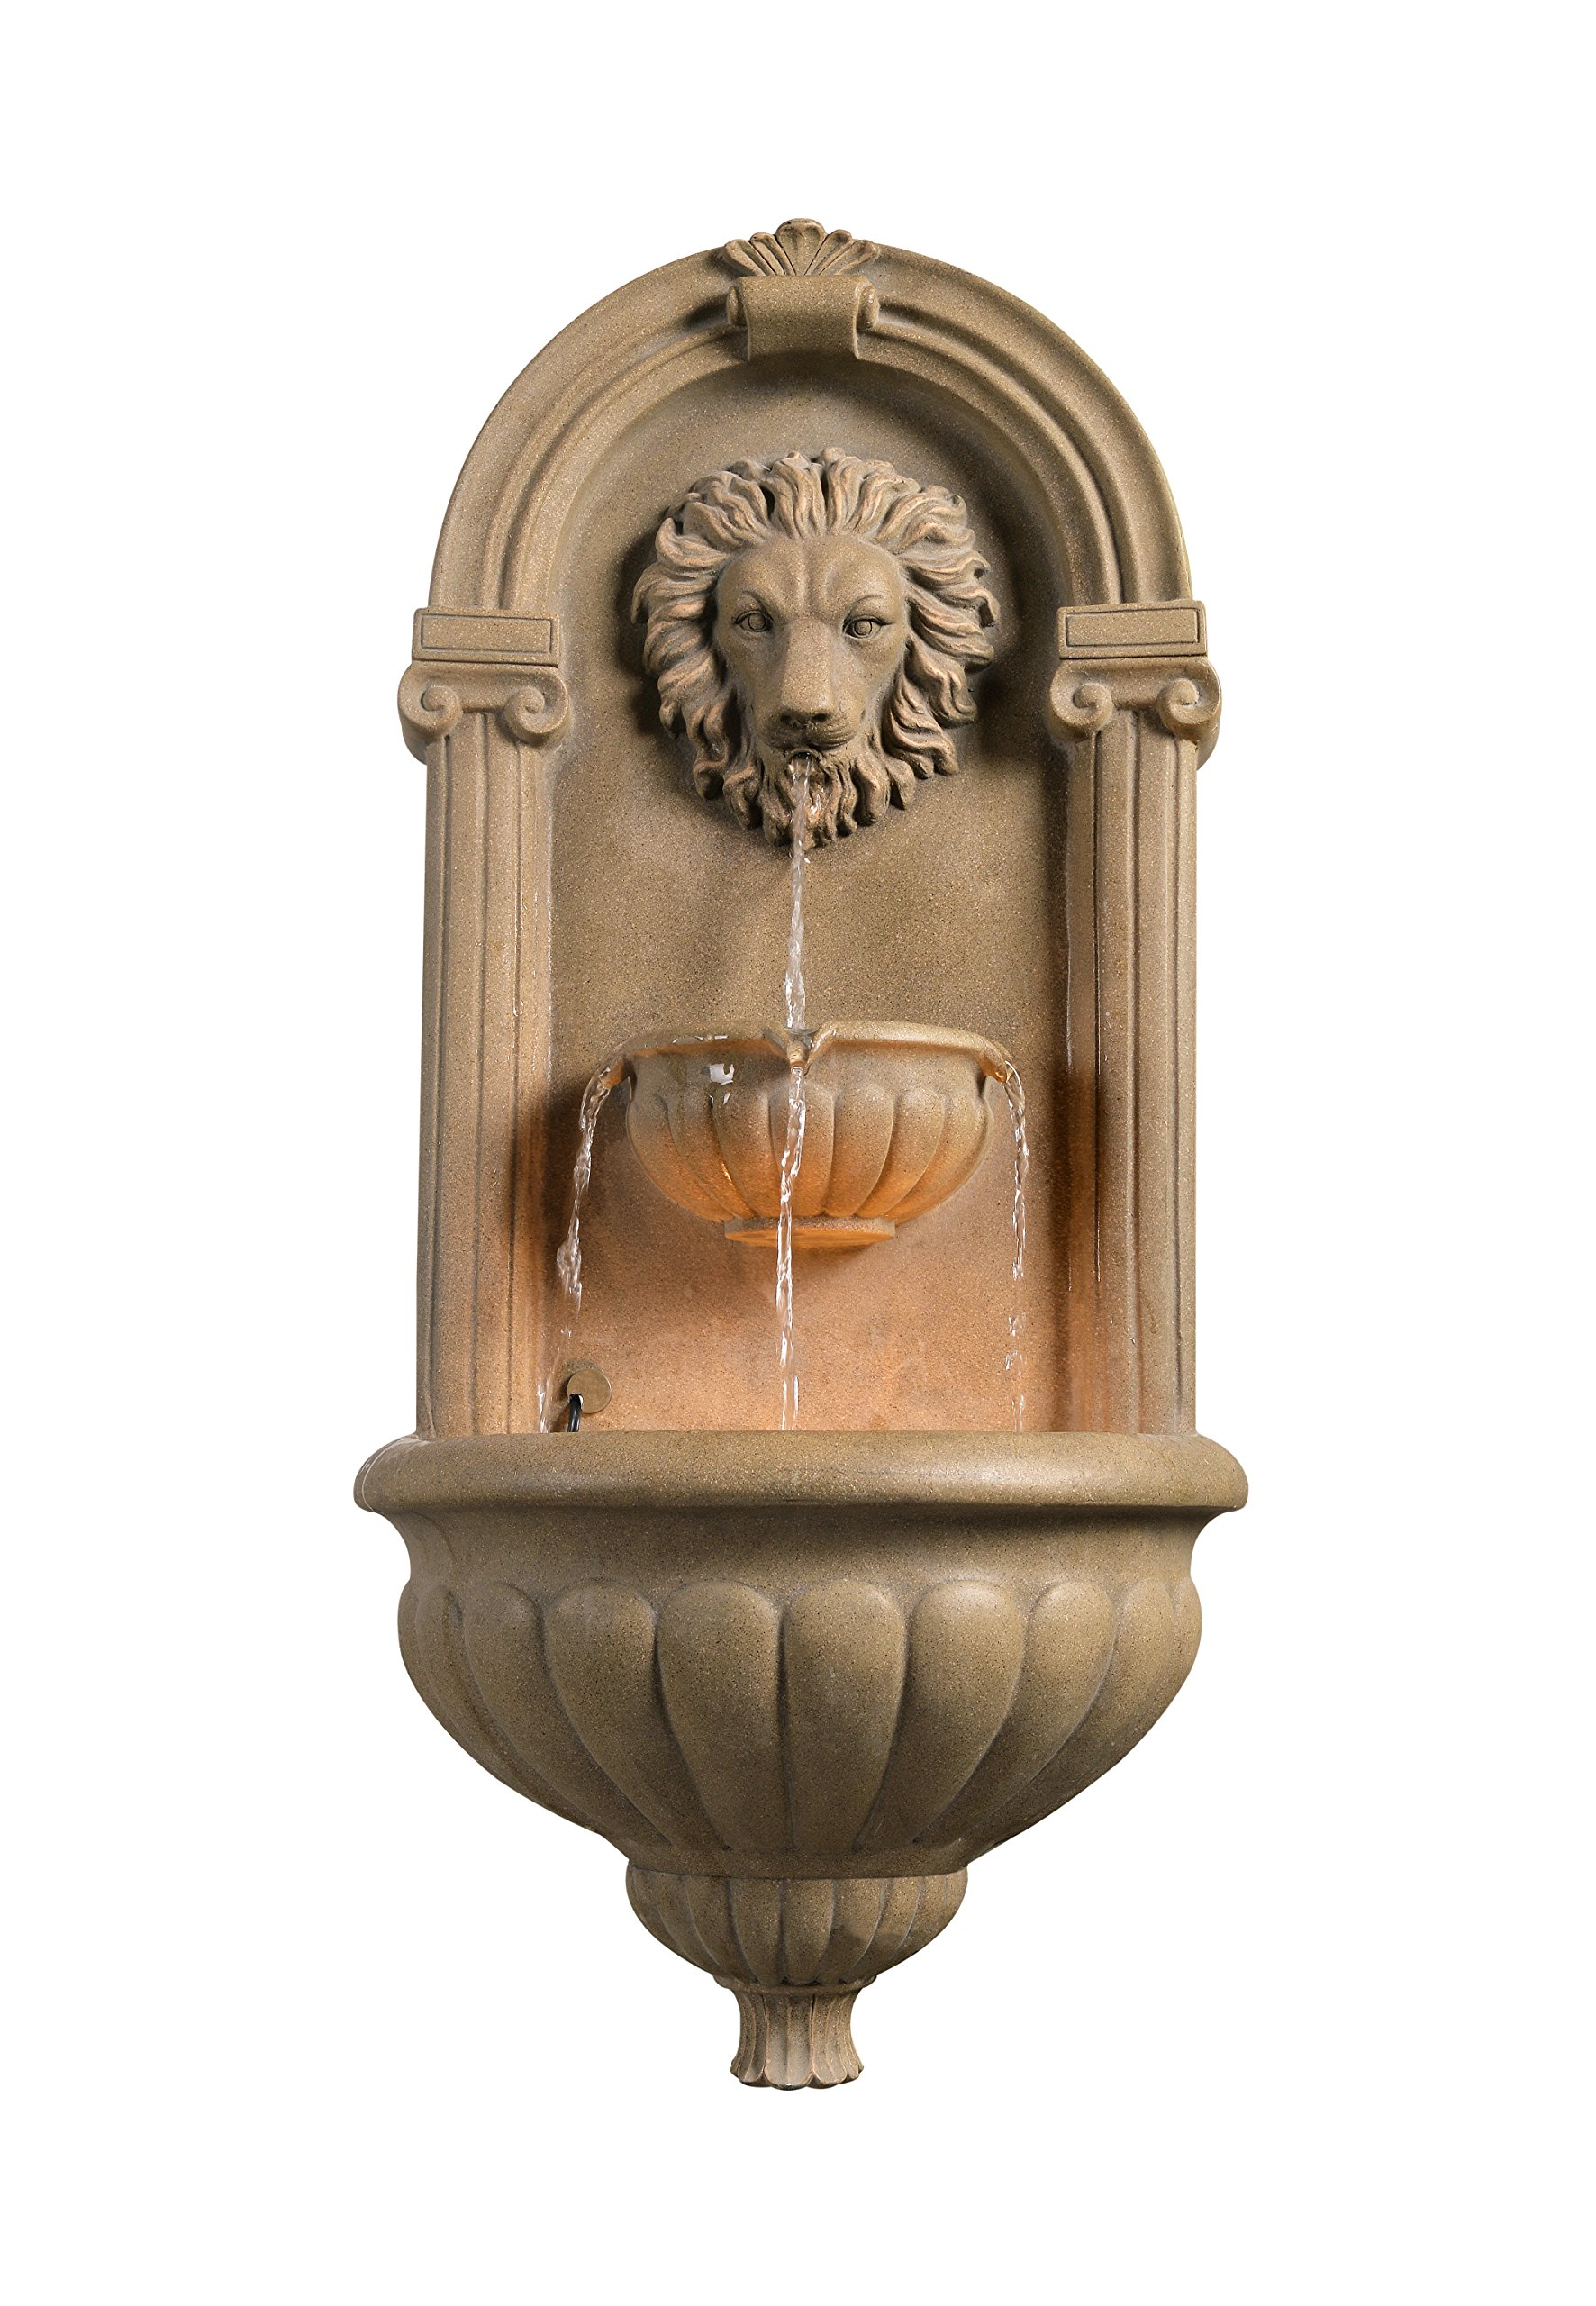 Kenroy Home 50026SS Regal Wall Fountain, Sandstone Finish